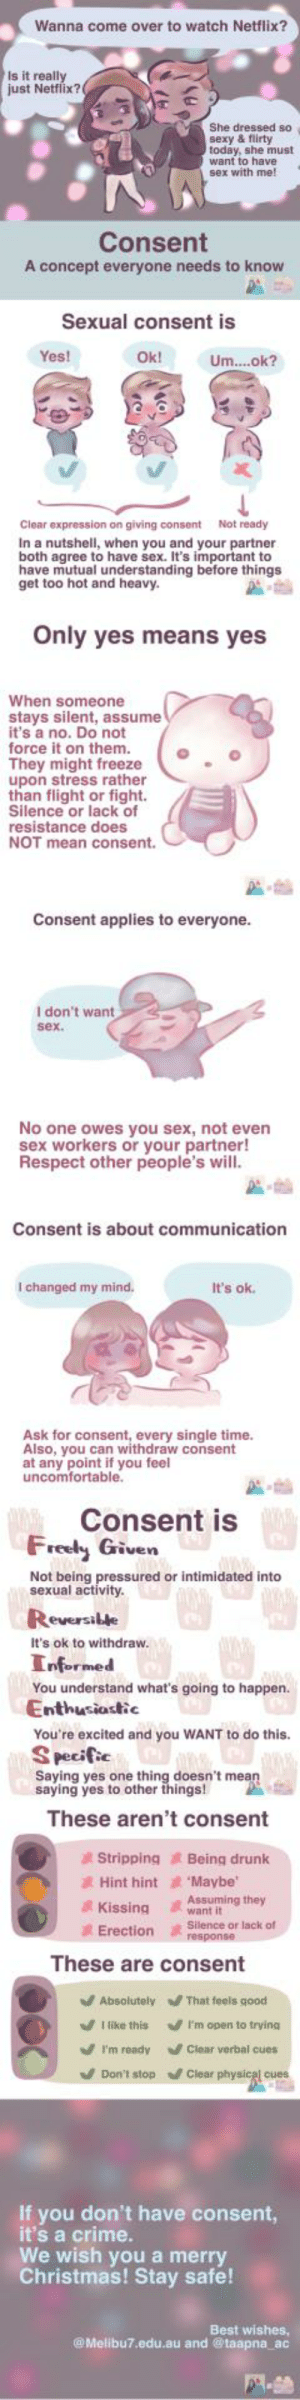 Consent, a concept every single person should know. Drew this piece to explain consent, collaboration with Aids Concern Organisation Hong Kong. Wish you a safe and merry Christmas :) by lovaduck MORE MEMES: Wanna come over to watch Netflix?  Is it really  just Netflix?  She dressed so  sexy & flirty  today, she must  want to have  sex with me!  Consent  A concept everyone needs to know  Sexual consent is  Yes!  Ok!  Um..ok?  Clear expression on giving consent  Not ready  In a nutshell, when you and your partner  both agree to have sex. It's important to  have mutual understanding before things  get too hot and heavy.  Only yes means yes  When someone  stays silent, assume  it's a no. Do not  force it on them.  They might freeze  upon stress rather  than flight or fight.  Silence or lack of  resistance does  NOT mean consent.  Consent applies to everyone.  I don't want  sex.  No one owes you sex, not even  sex workers or your partner!  Respect other people's will.  Consent is about communication  I changed my mind.  It's ok.  Ask for consent, every single time.  Also, you can withdraw consent  at any point if you feel  uncomfortable.  Consent is  Freely Given W  Not being pressured or intimidated into  sexual activity.  Reversible  It's ok to withdraw.  Informed  You understand what's going to happen.  Enthusiastic  You're excited and you WANT to do this.  S pecific  Saying yes one thing doesn't mean  saying yes to other things!  These aren't consent  Being drunk  'Maybe  Stripping  2 Hint hint  Assuming they  want it  Kissing  Silence or lack of  response  A  Erection  These are consent  V Absolutely  That feels good  I like this  V 'm open to trying  V I'm ready  Clear verbal cues  V Don't stop  / Clear physical cues  If you don't have consent,  it's a crime.  We wish you a merry  Christmas! Stay safe!  Best wishes,  @ Melibu7.edu.au and @taapna_ac Consent, a concept every single person should know. Drew this piece to explain consent, collaboration with Aids Concern Organisation Hong Kong. Wish you a safe and merry Christmas :) by lovaduck MORE MEMES